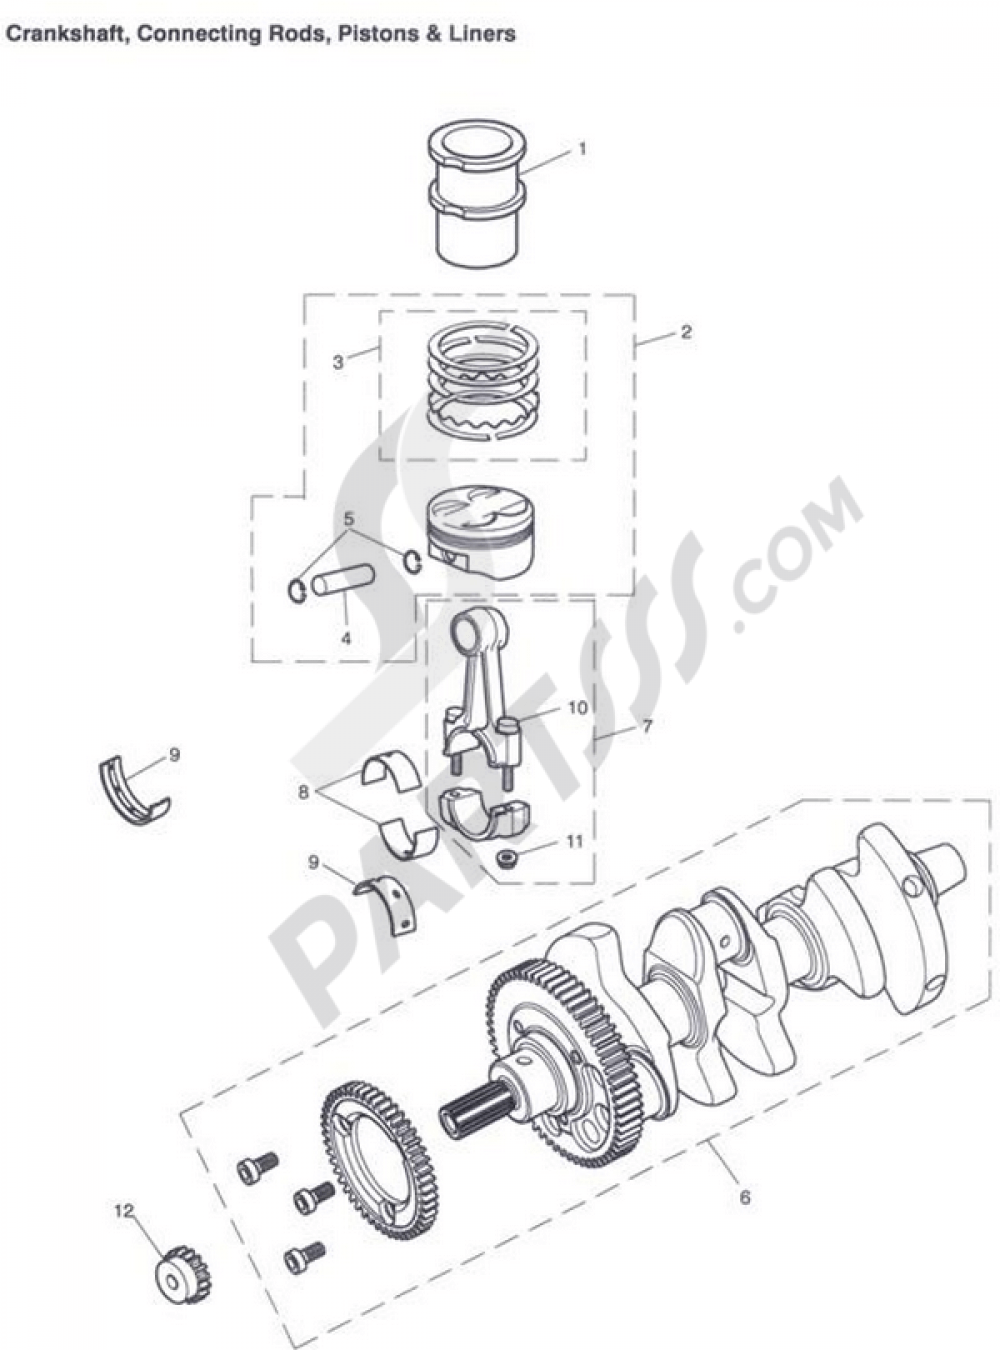 Crankshaft, Connecting Rods, Pistons & Liners Triumph